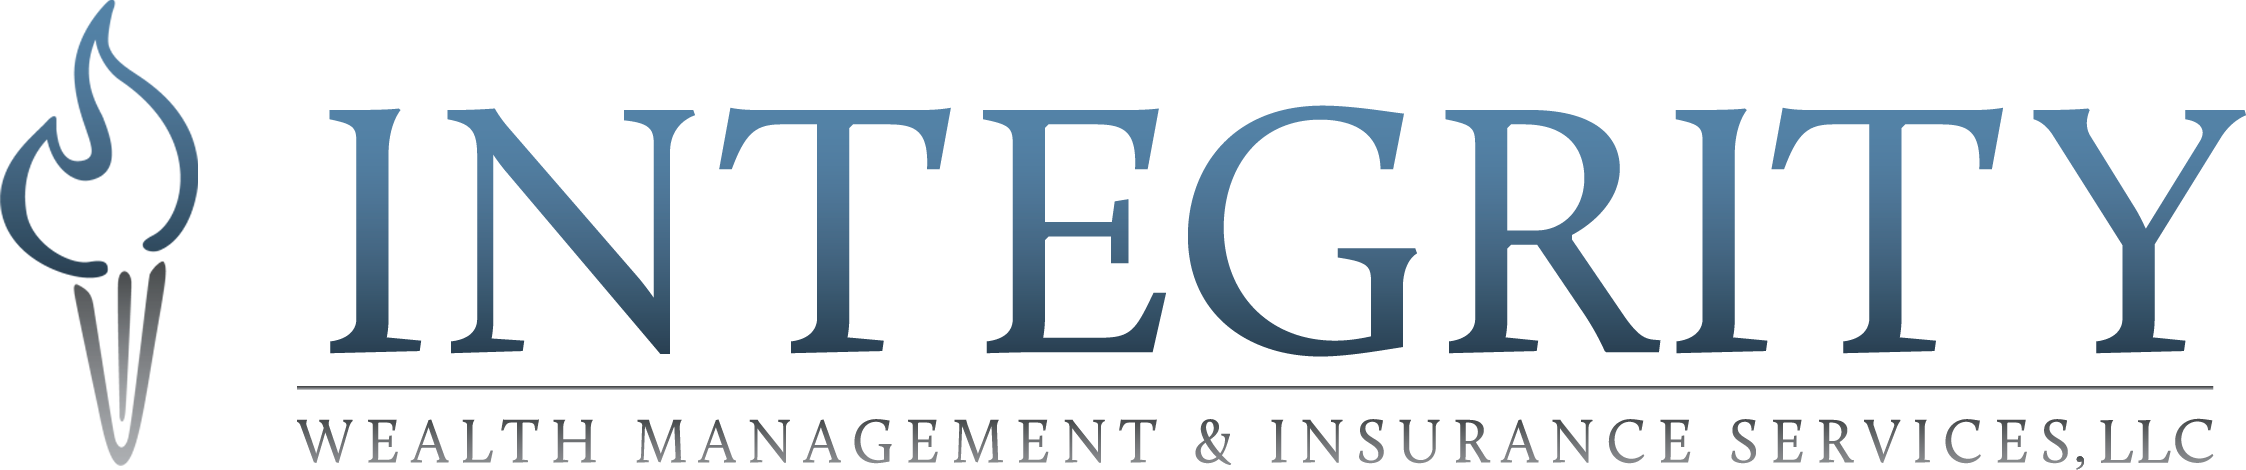 Integrity Wealth Management & Insurance Services